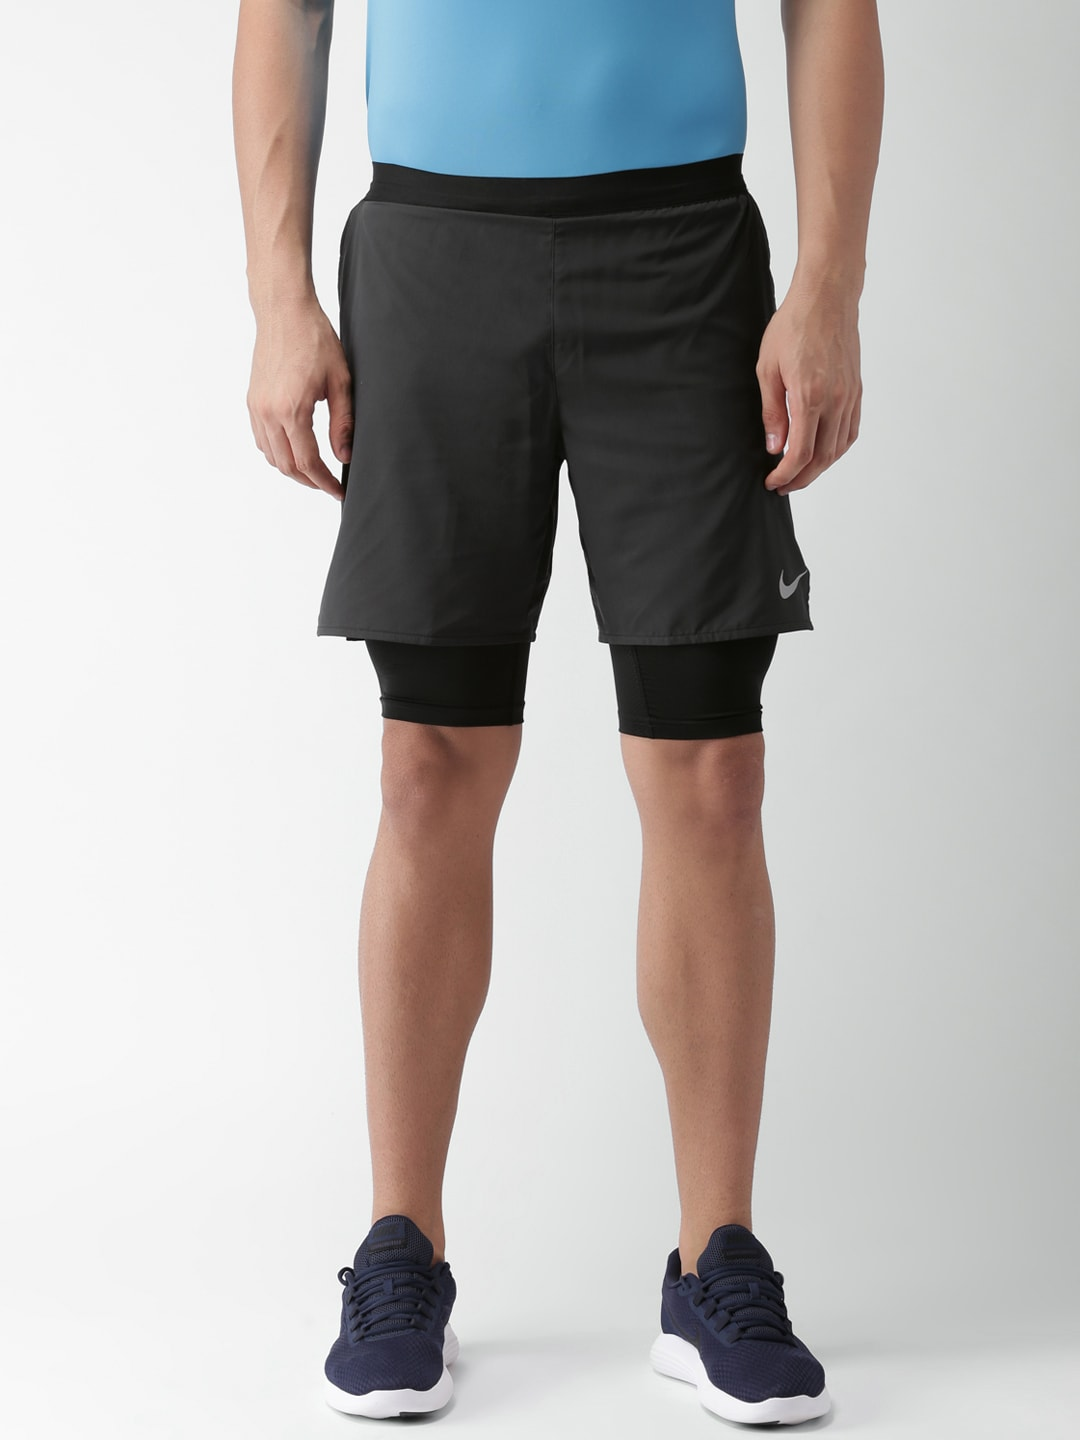 6910182e6a4c Nike Sports Shorts - Buy Nike Sports Shorts online in India